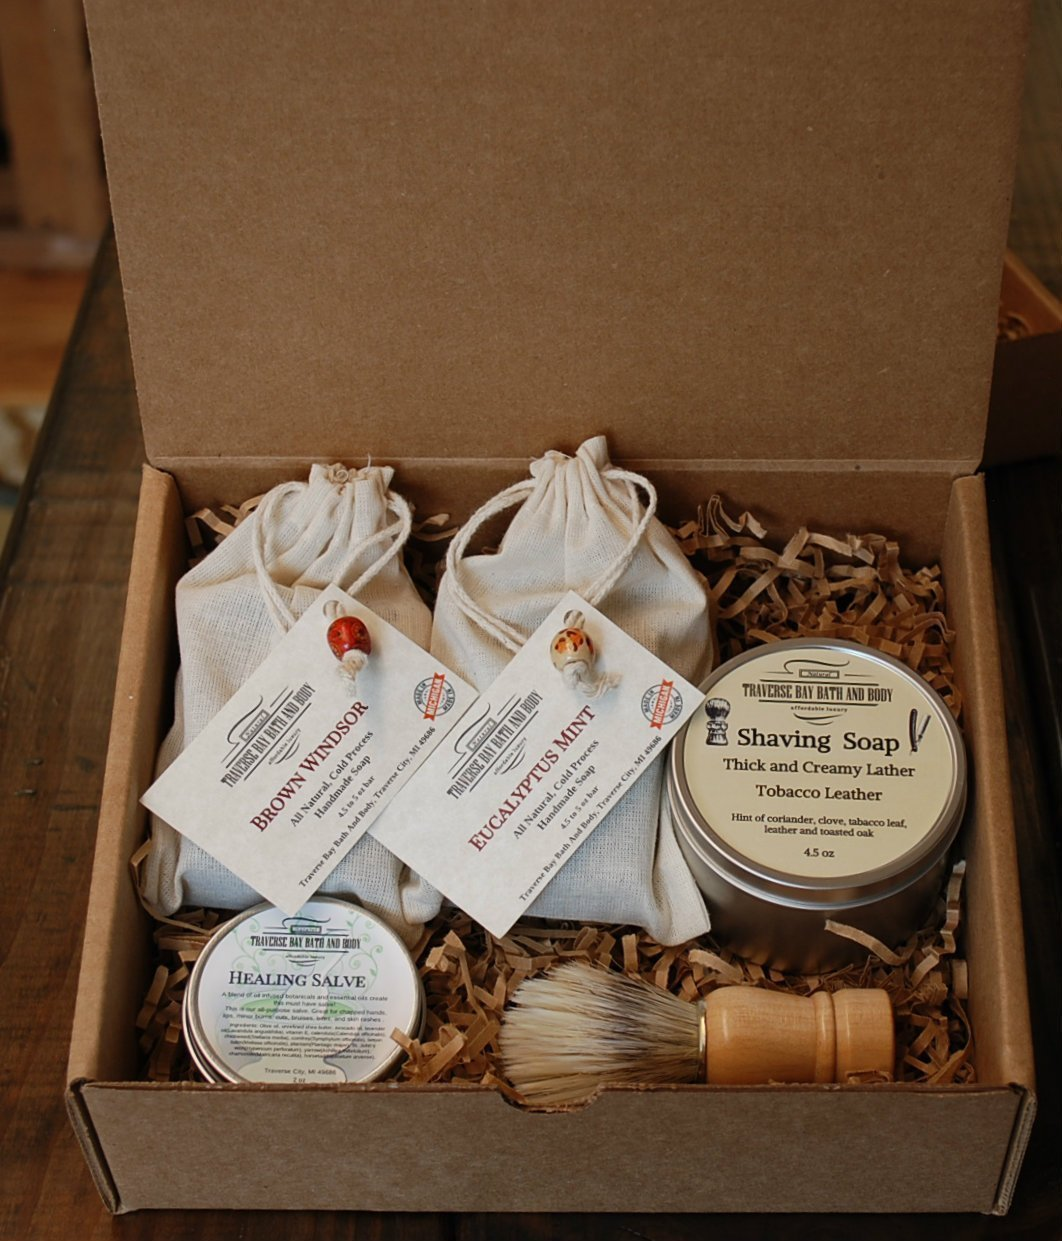 A Great gift box of natural handmade soaps and Shaving soap.